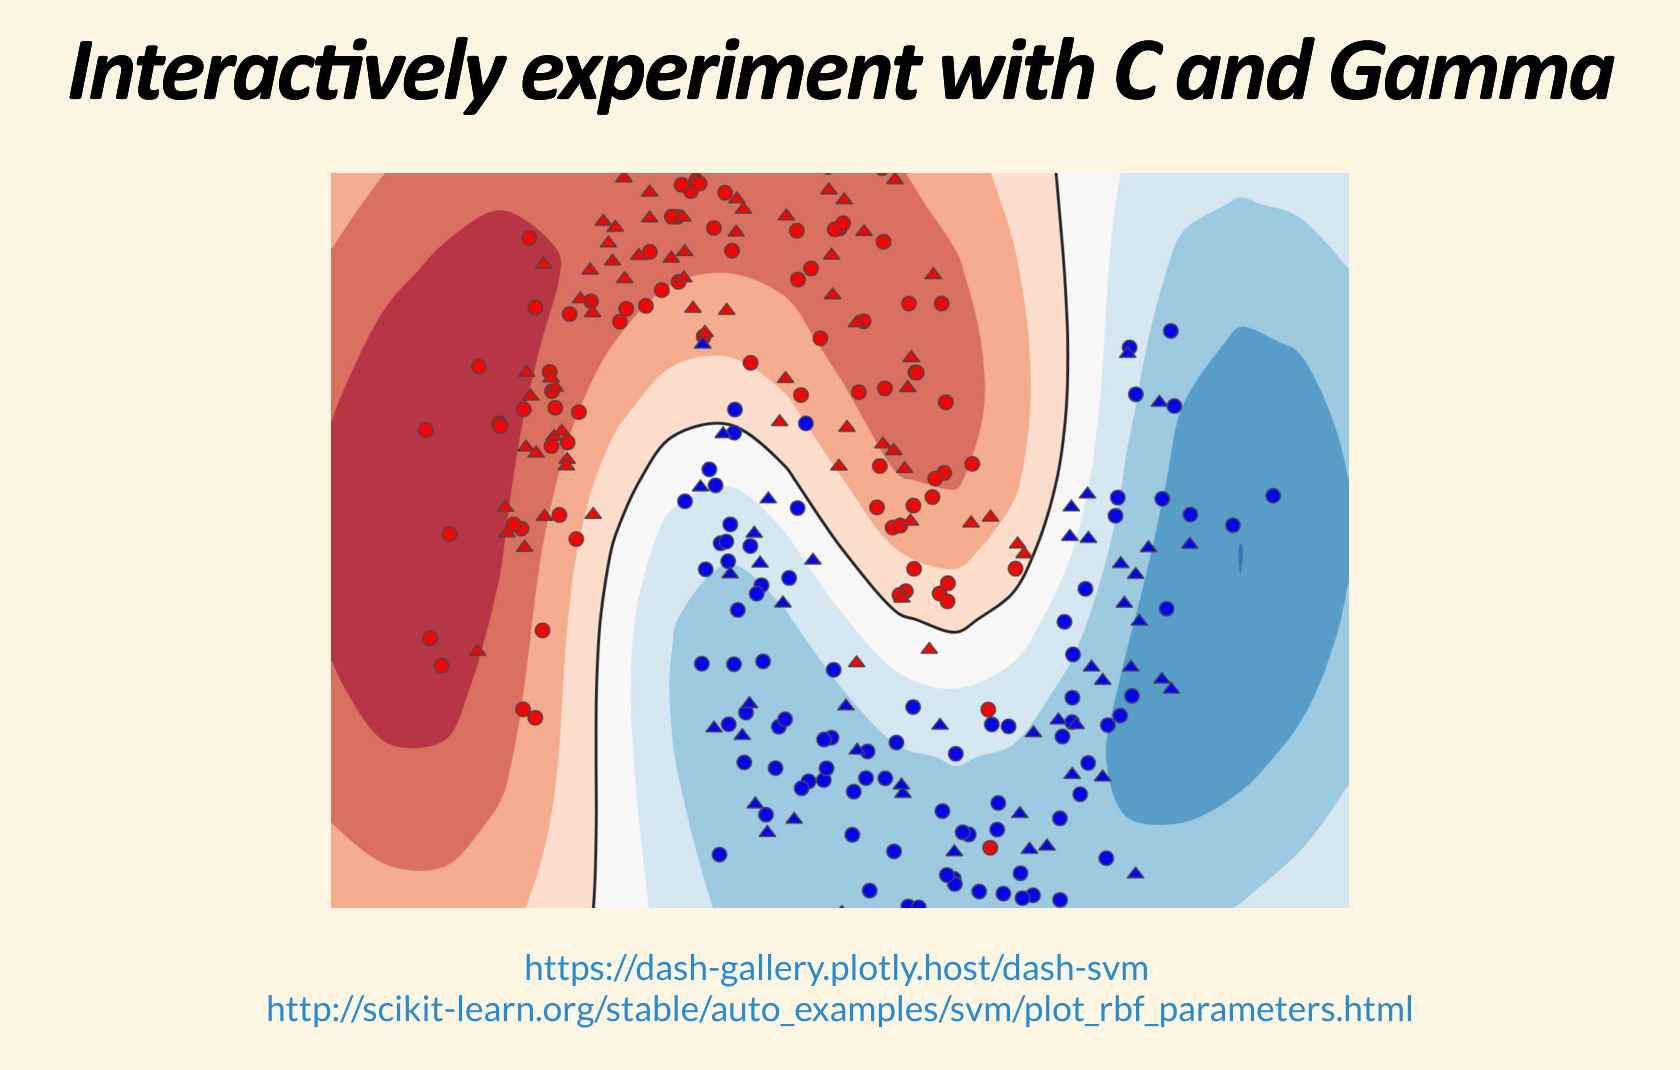 Plotly dash experiments